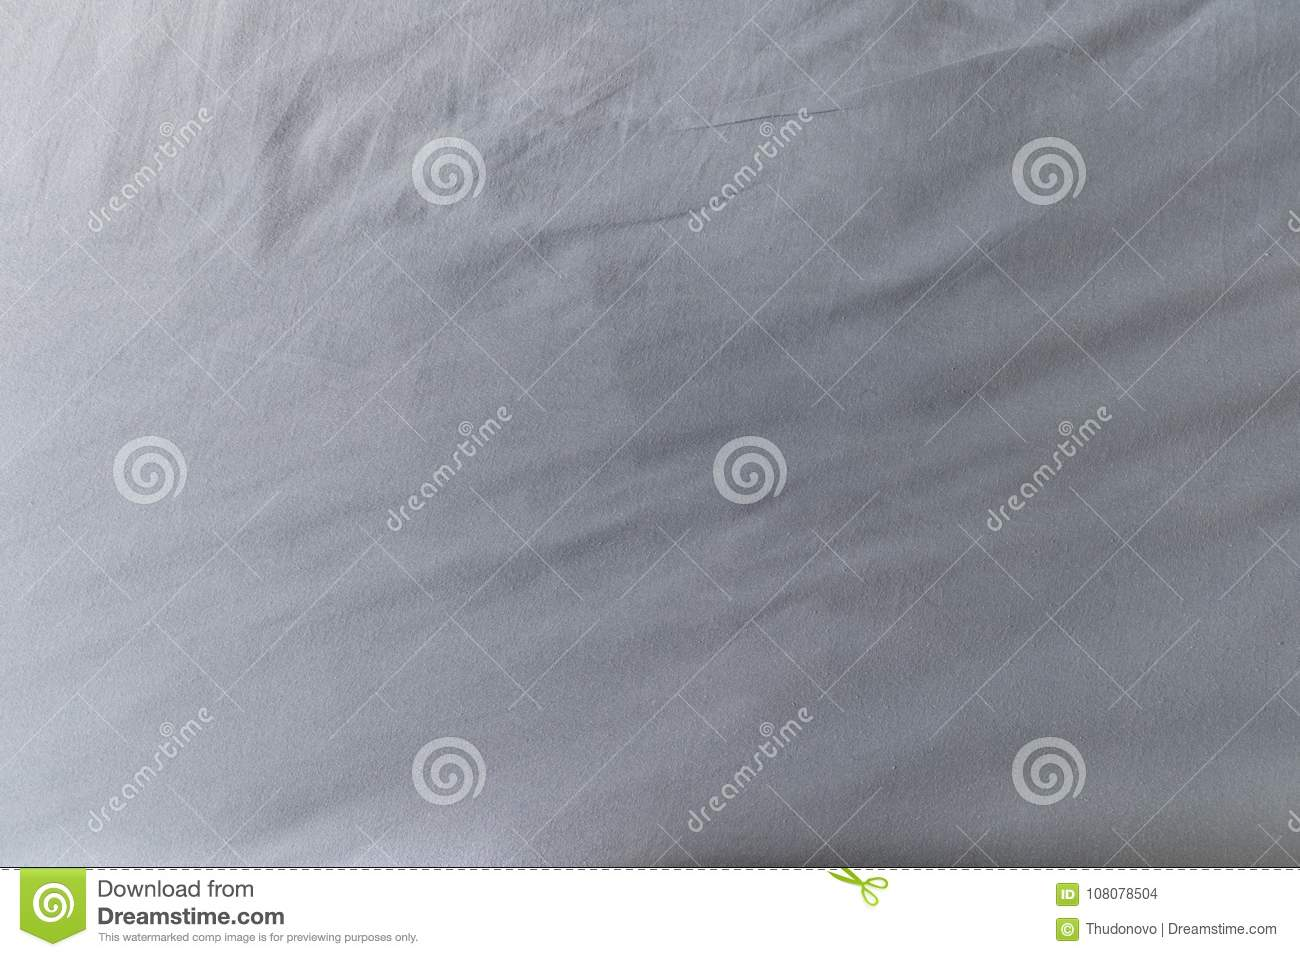 white bed sheet texture. White Bed Sheet Texture. Fabric Close-up. Texture E